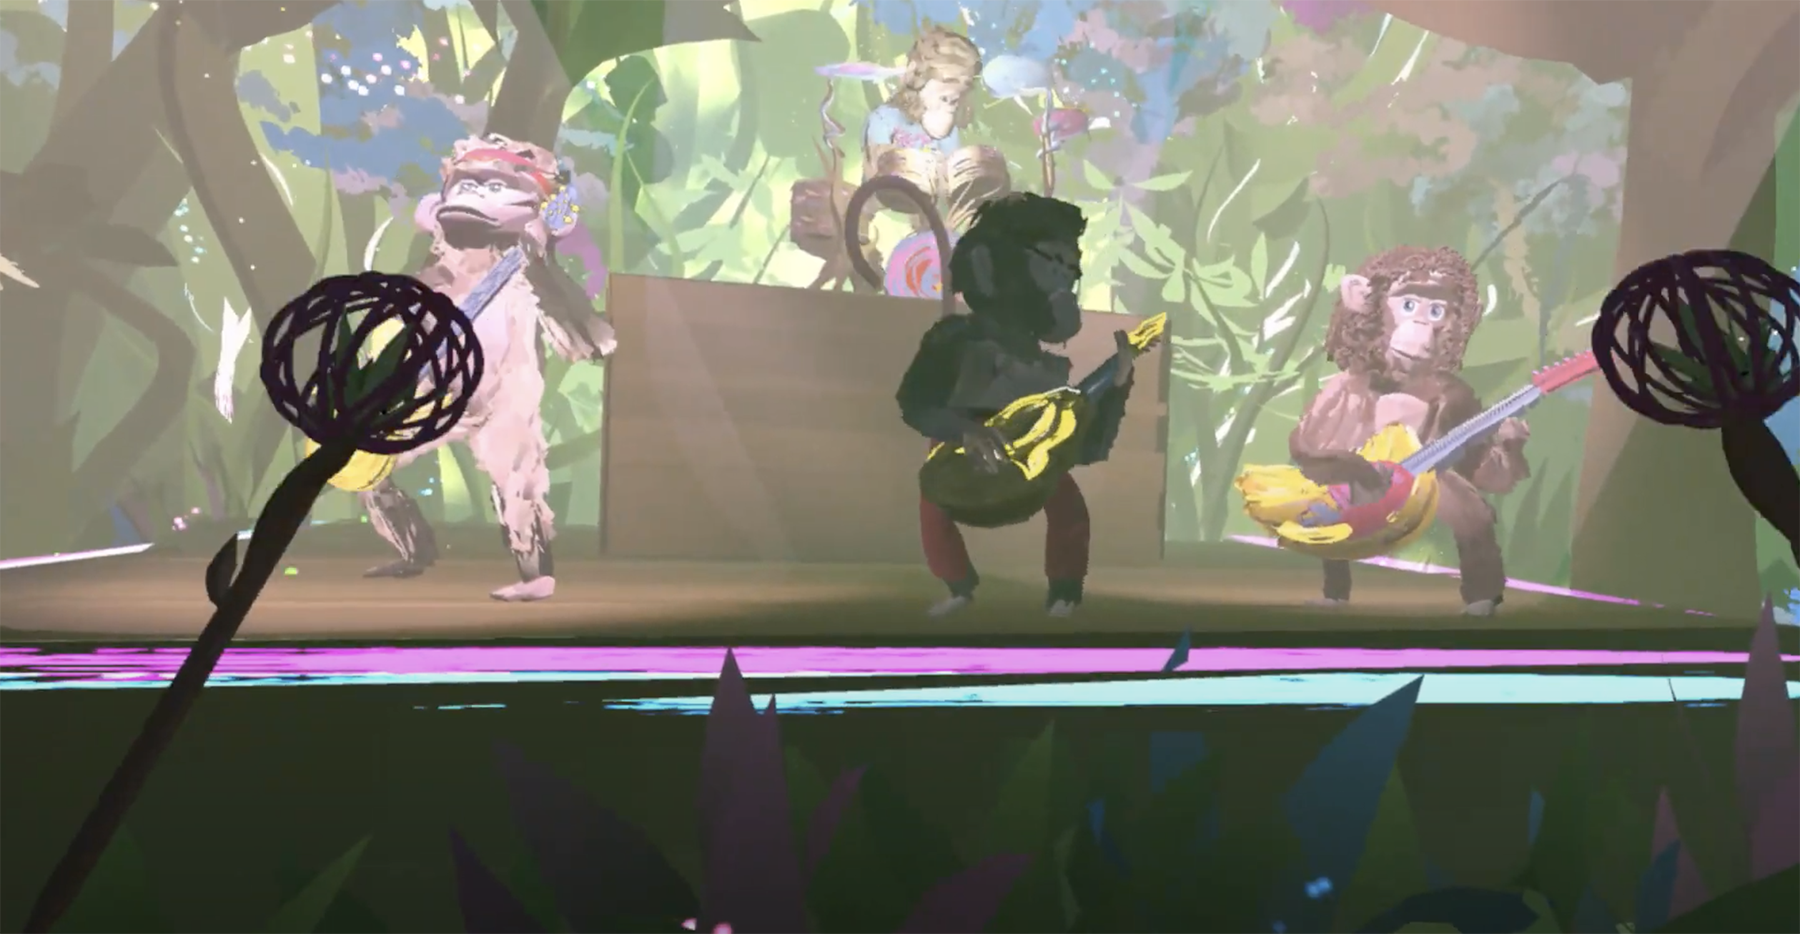 A VR scene with musicians as monkeys.